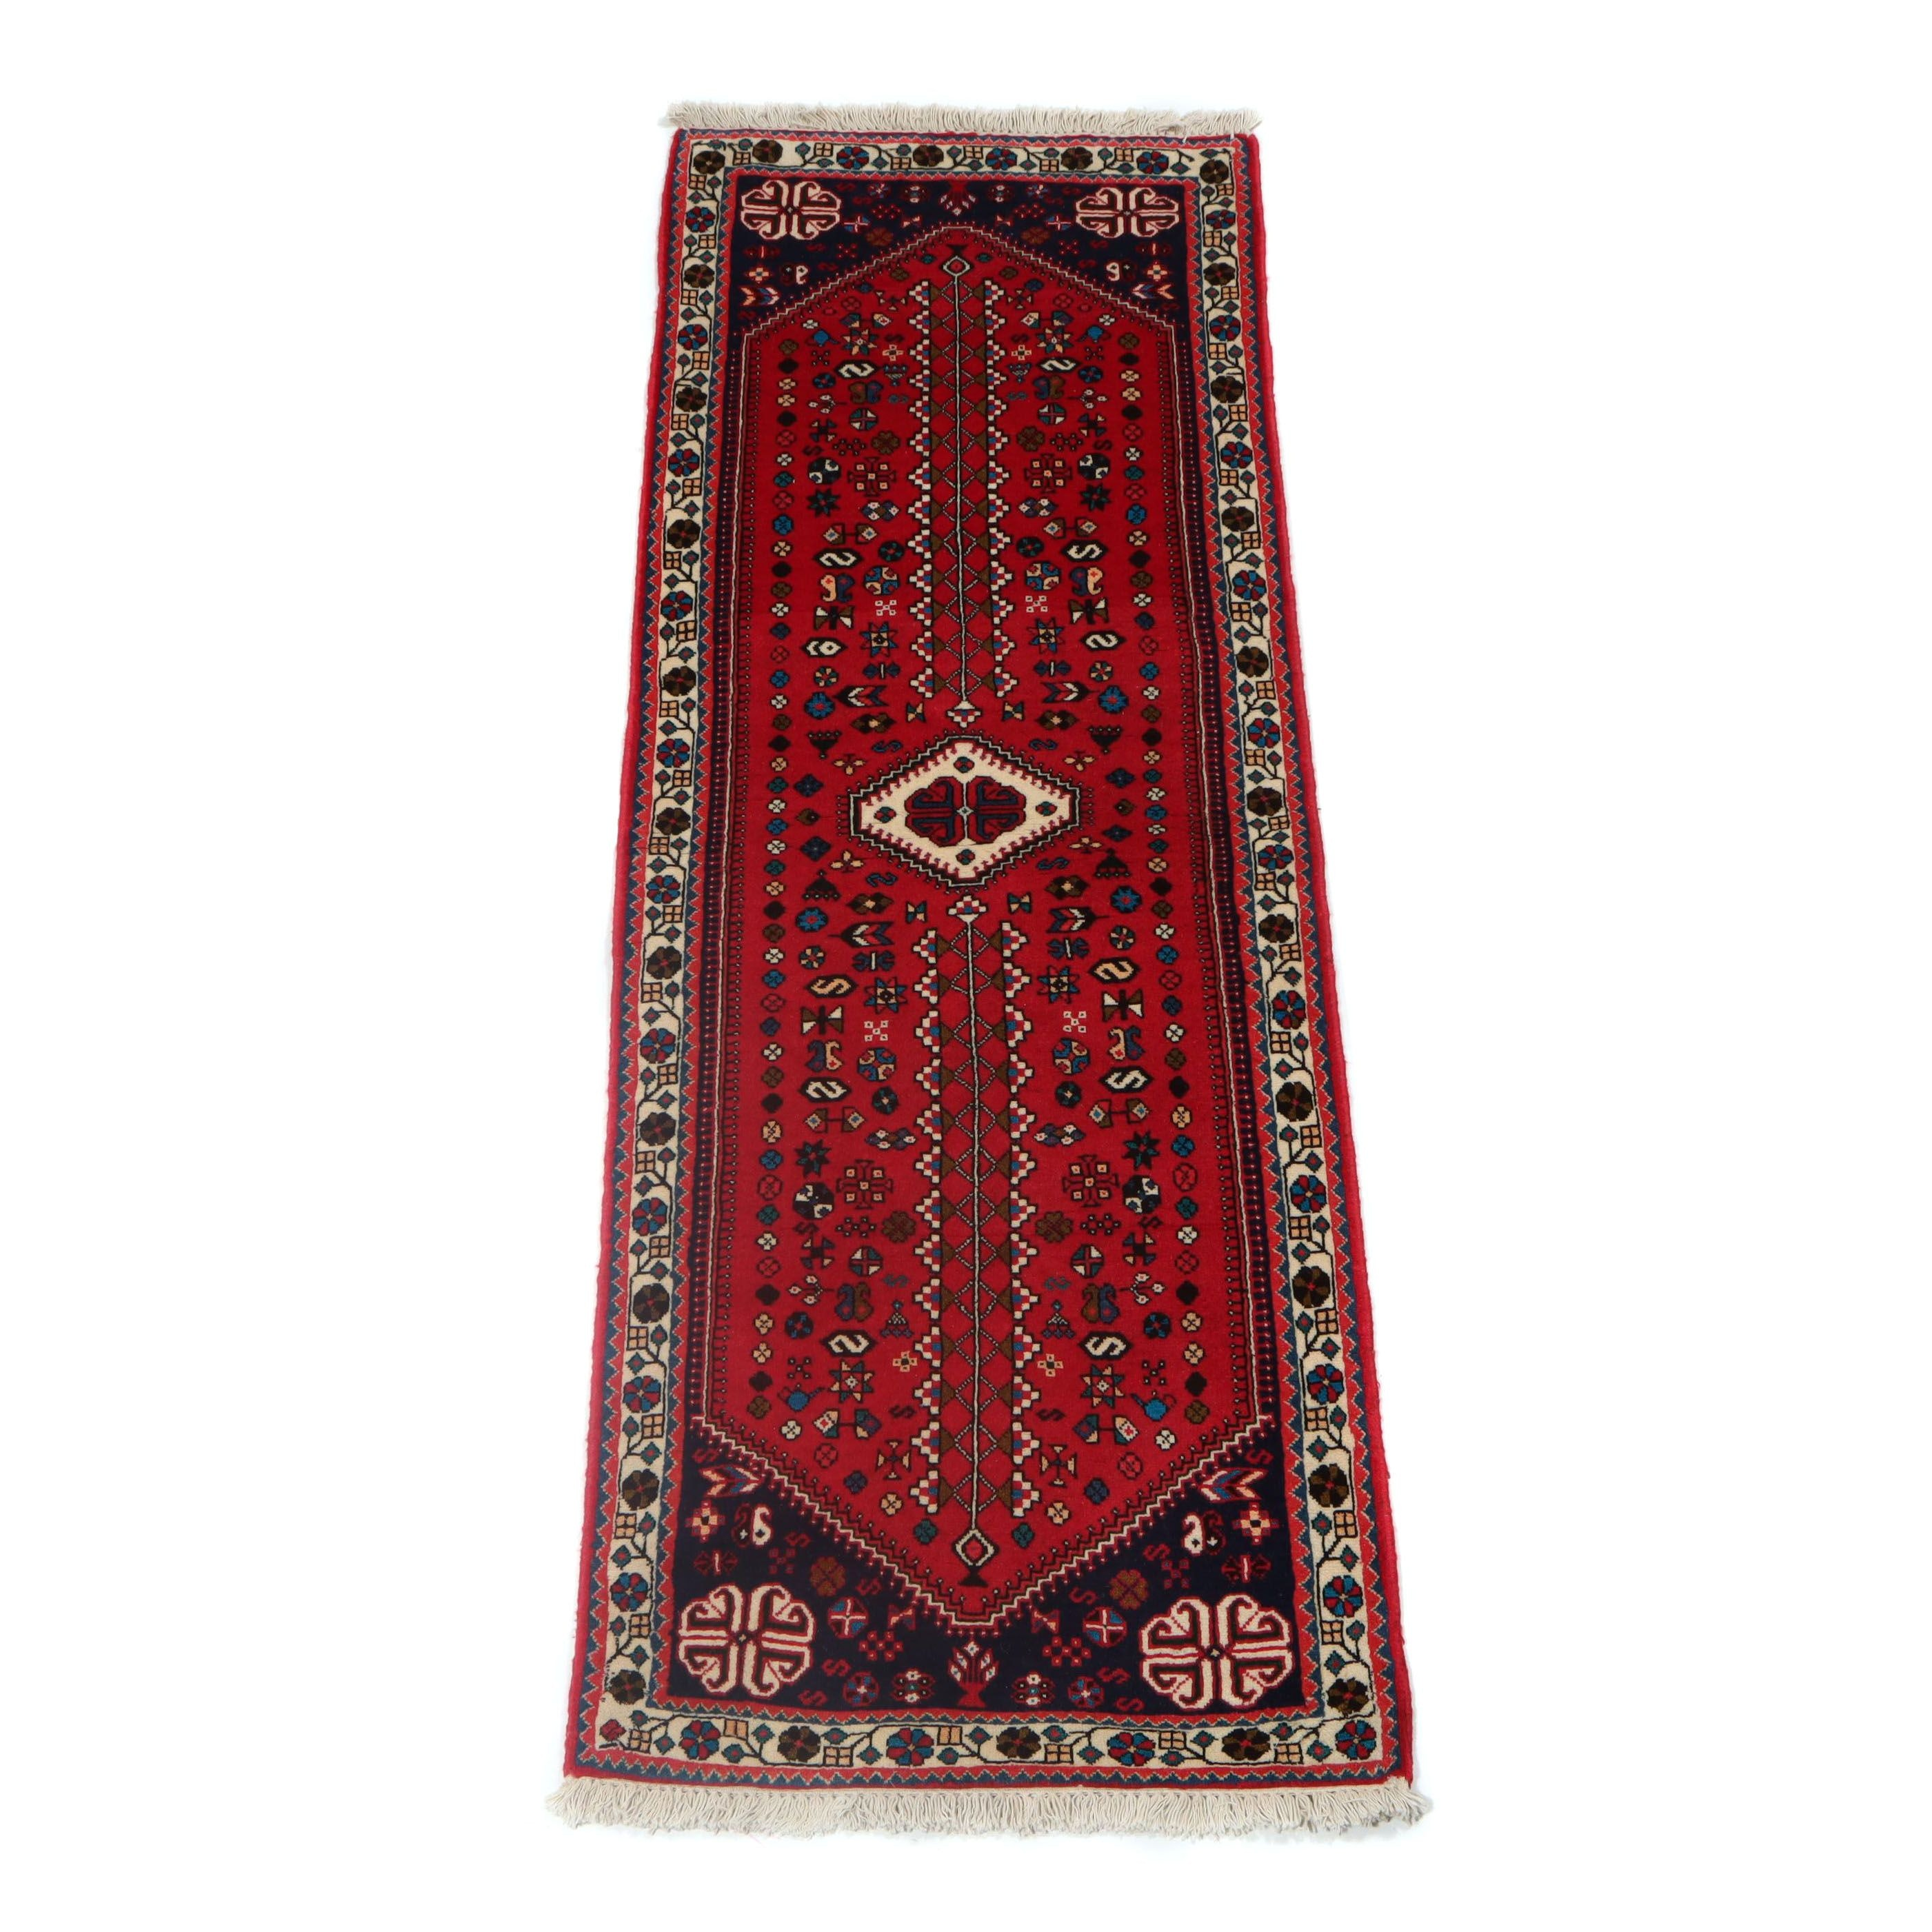 2.5' x 6.9' Hand-Knotted Persian Abadeh Shiraz Carpet Runner, Circa 1970s